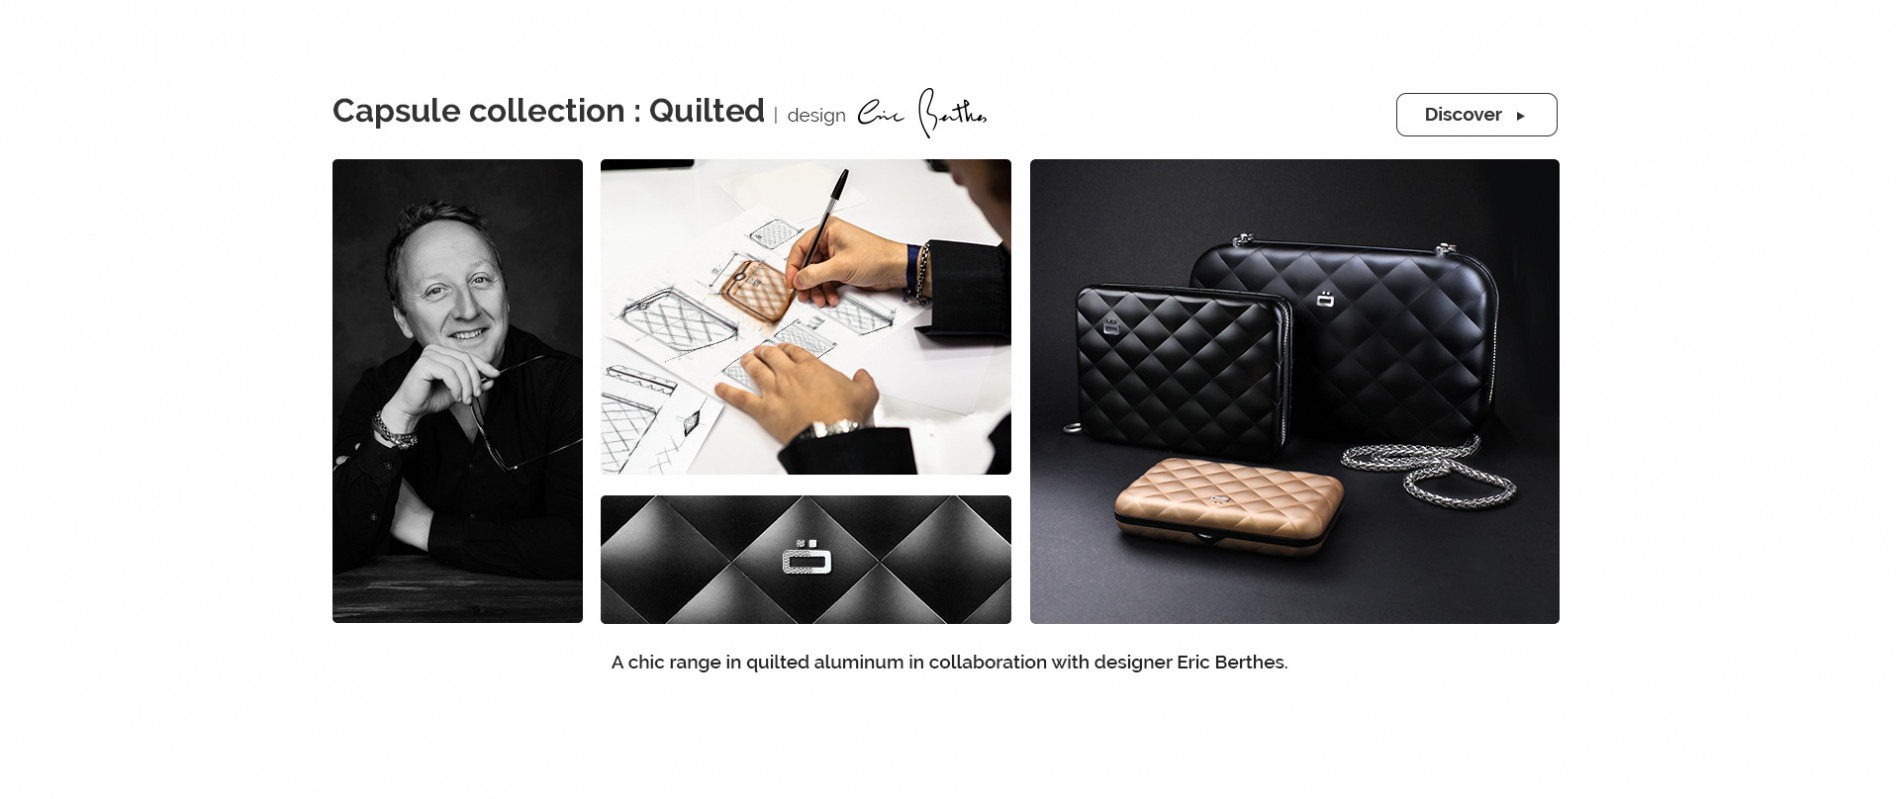 Ögon Designs - Collection Quilted visuel